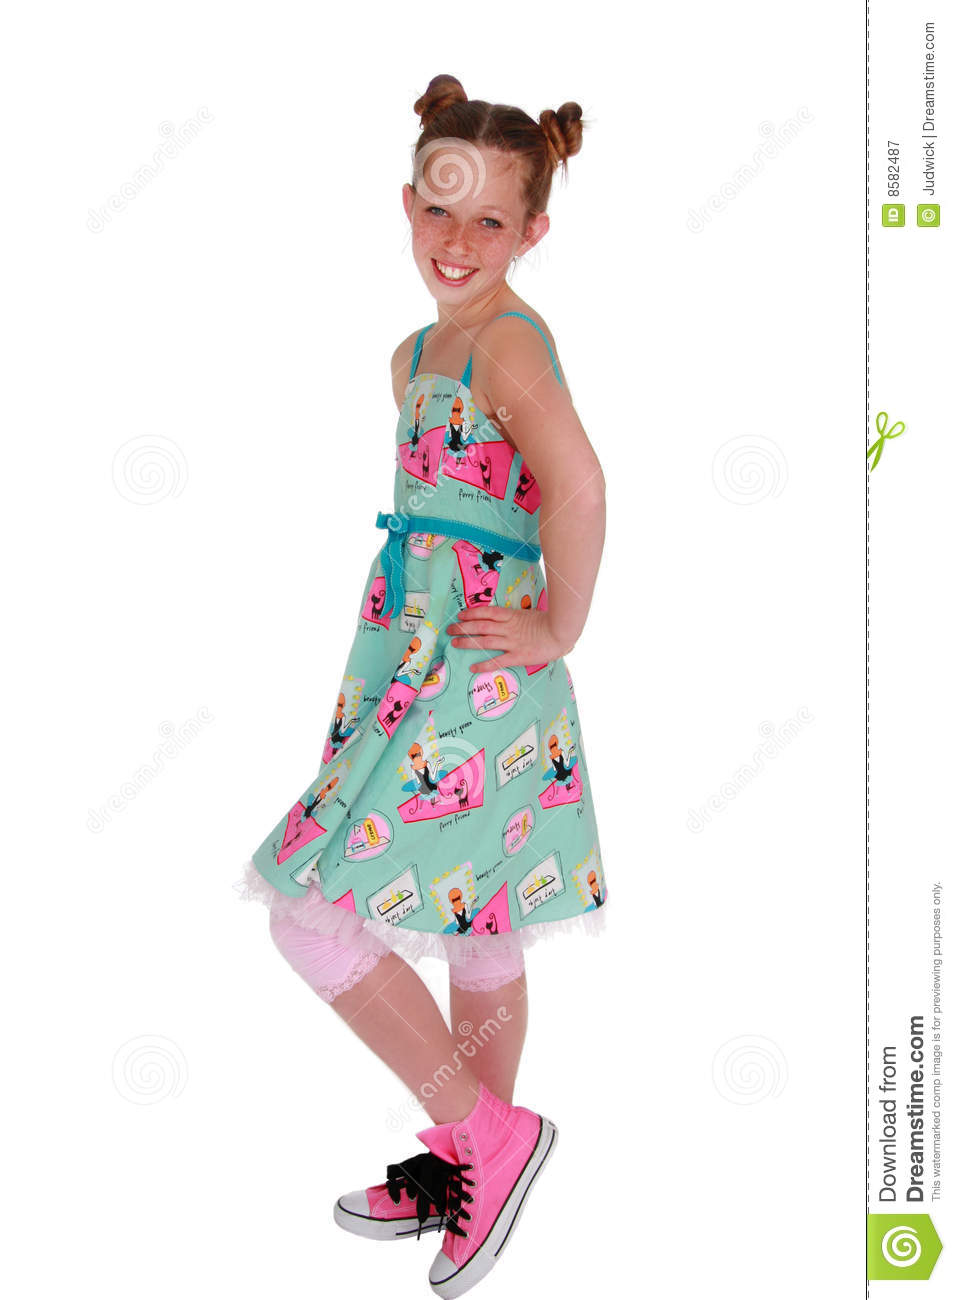 cute freckled tween girl in bright colorful 50 s style dress